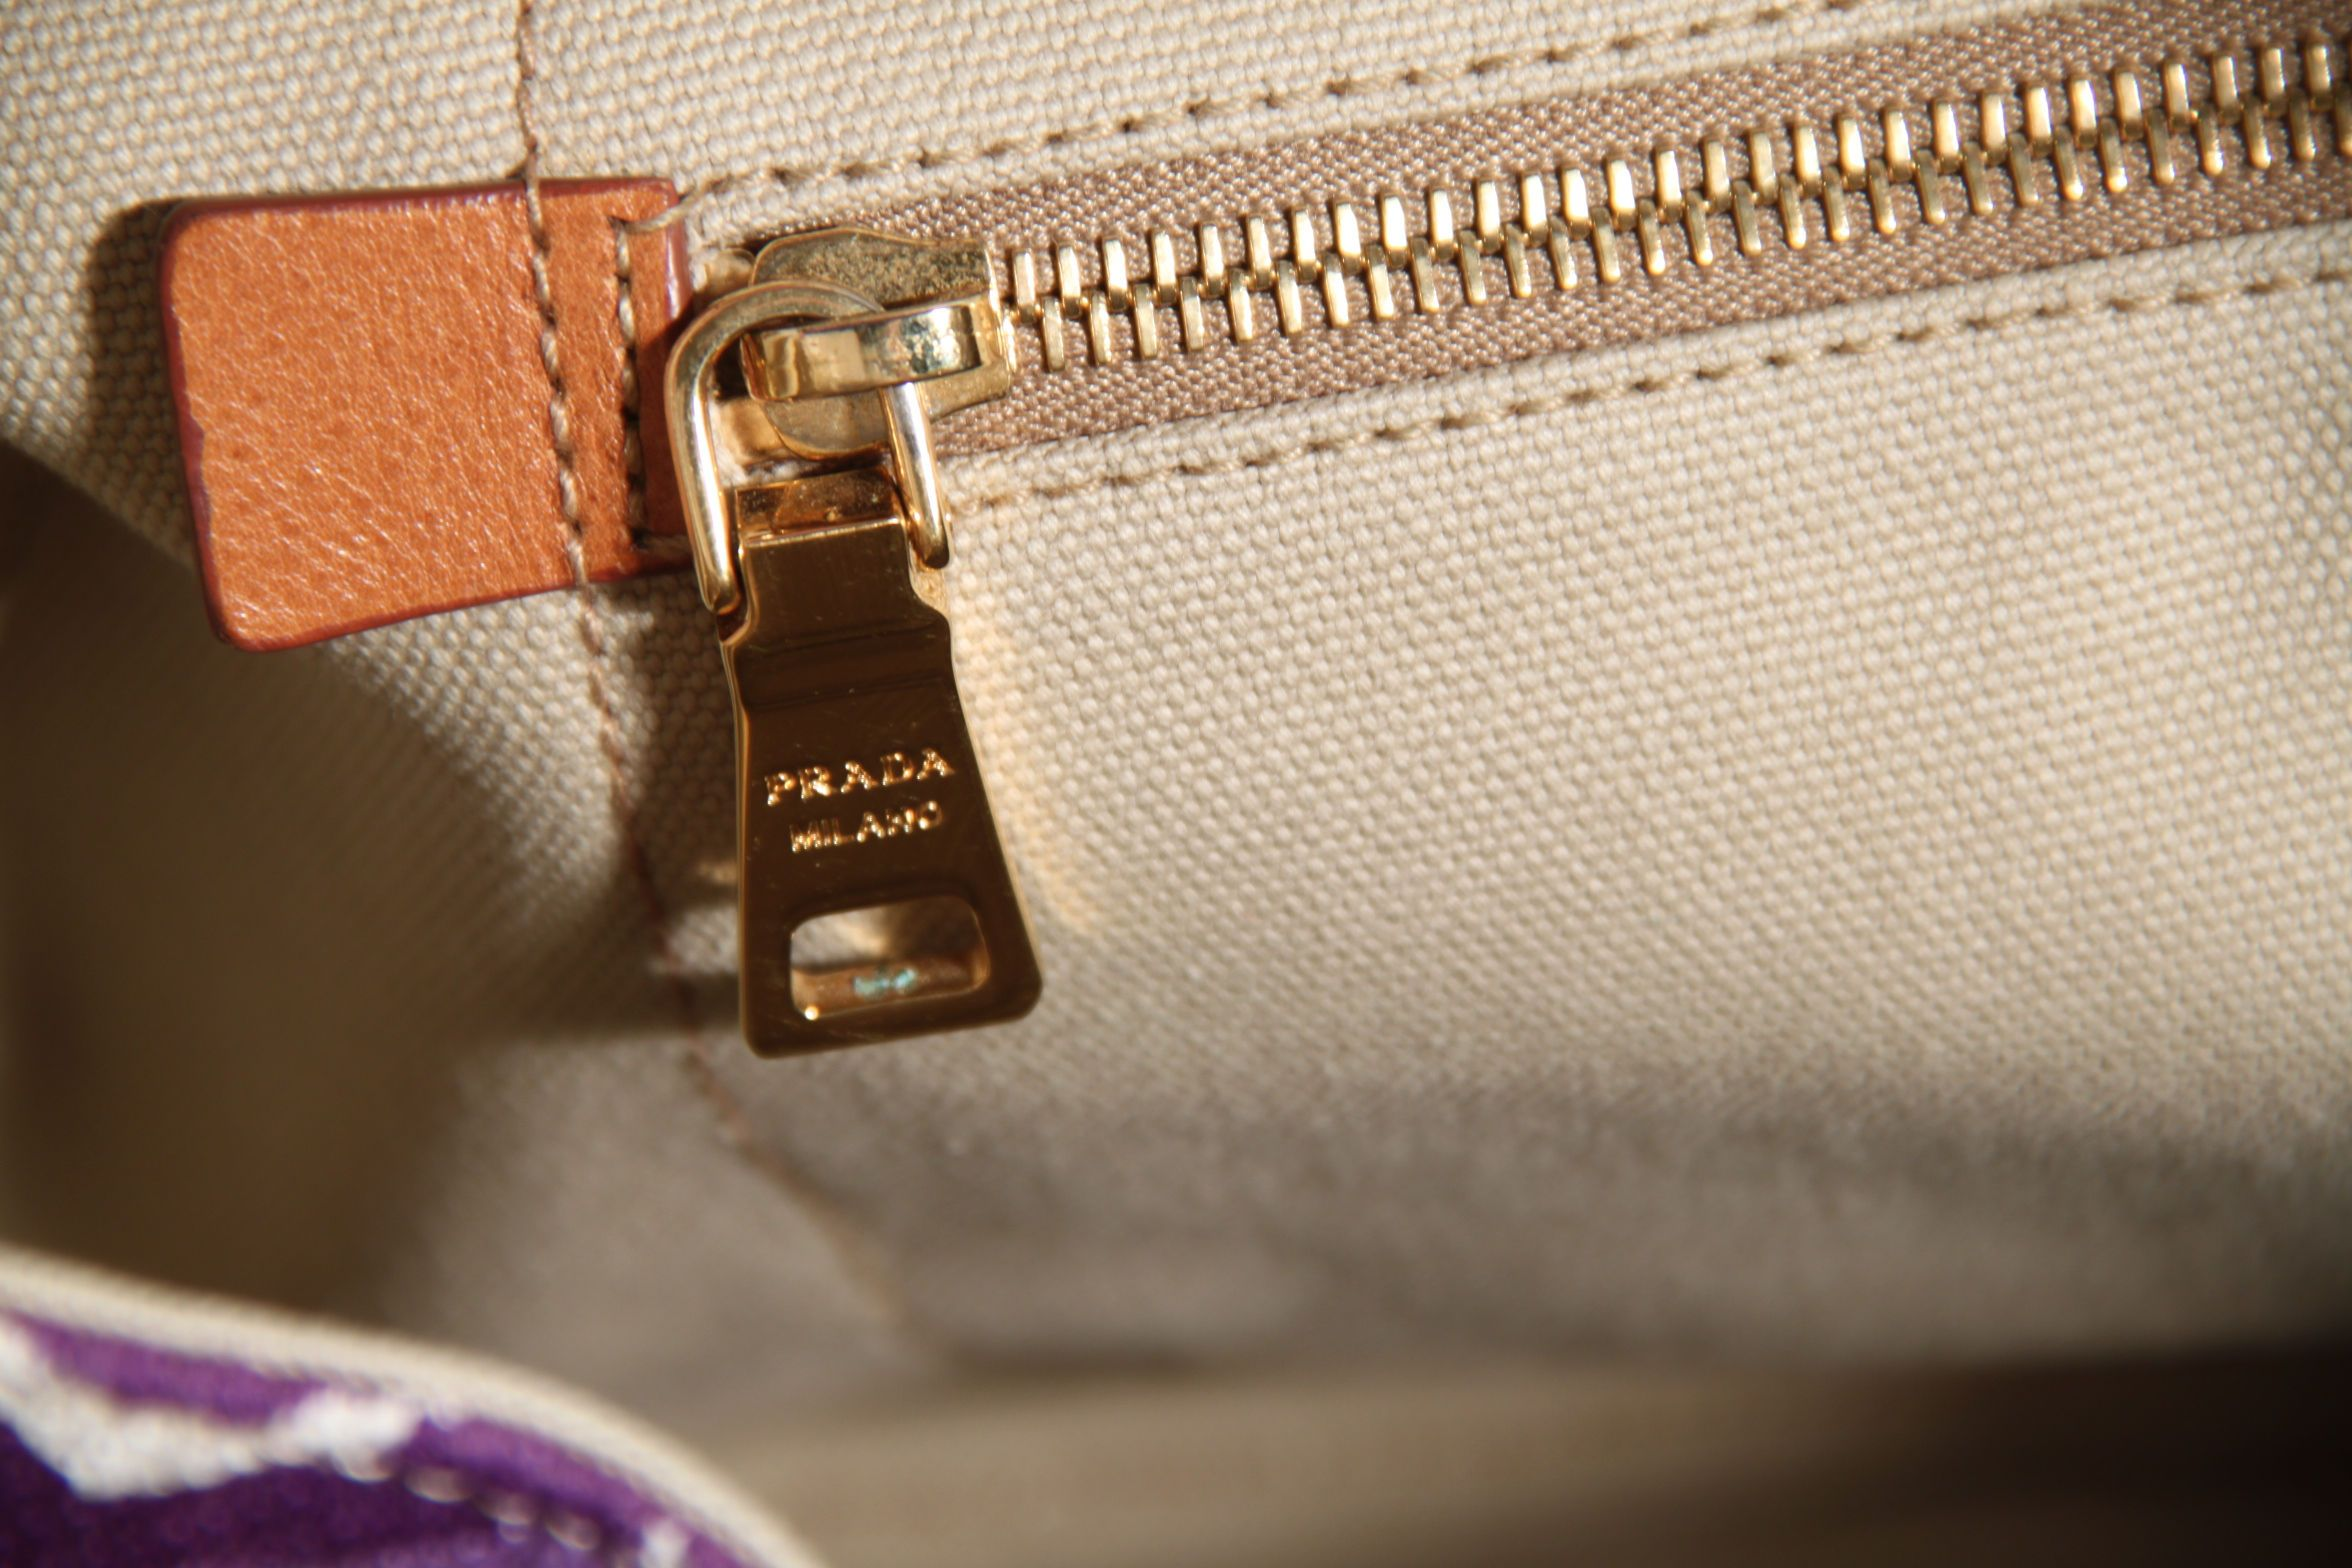 22c6ff15530992 Prada bags and most accessories have one or more of the below zippers: